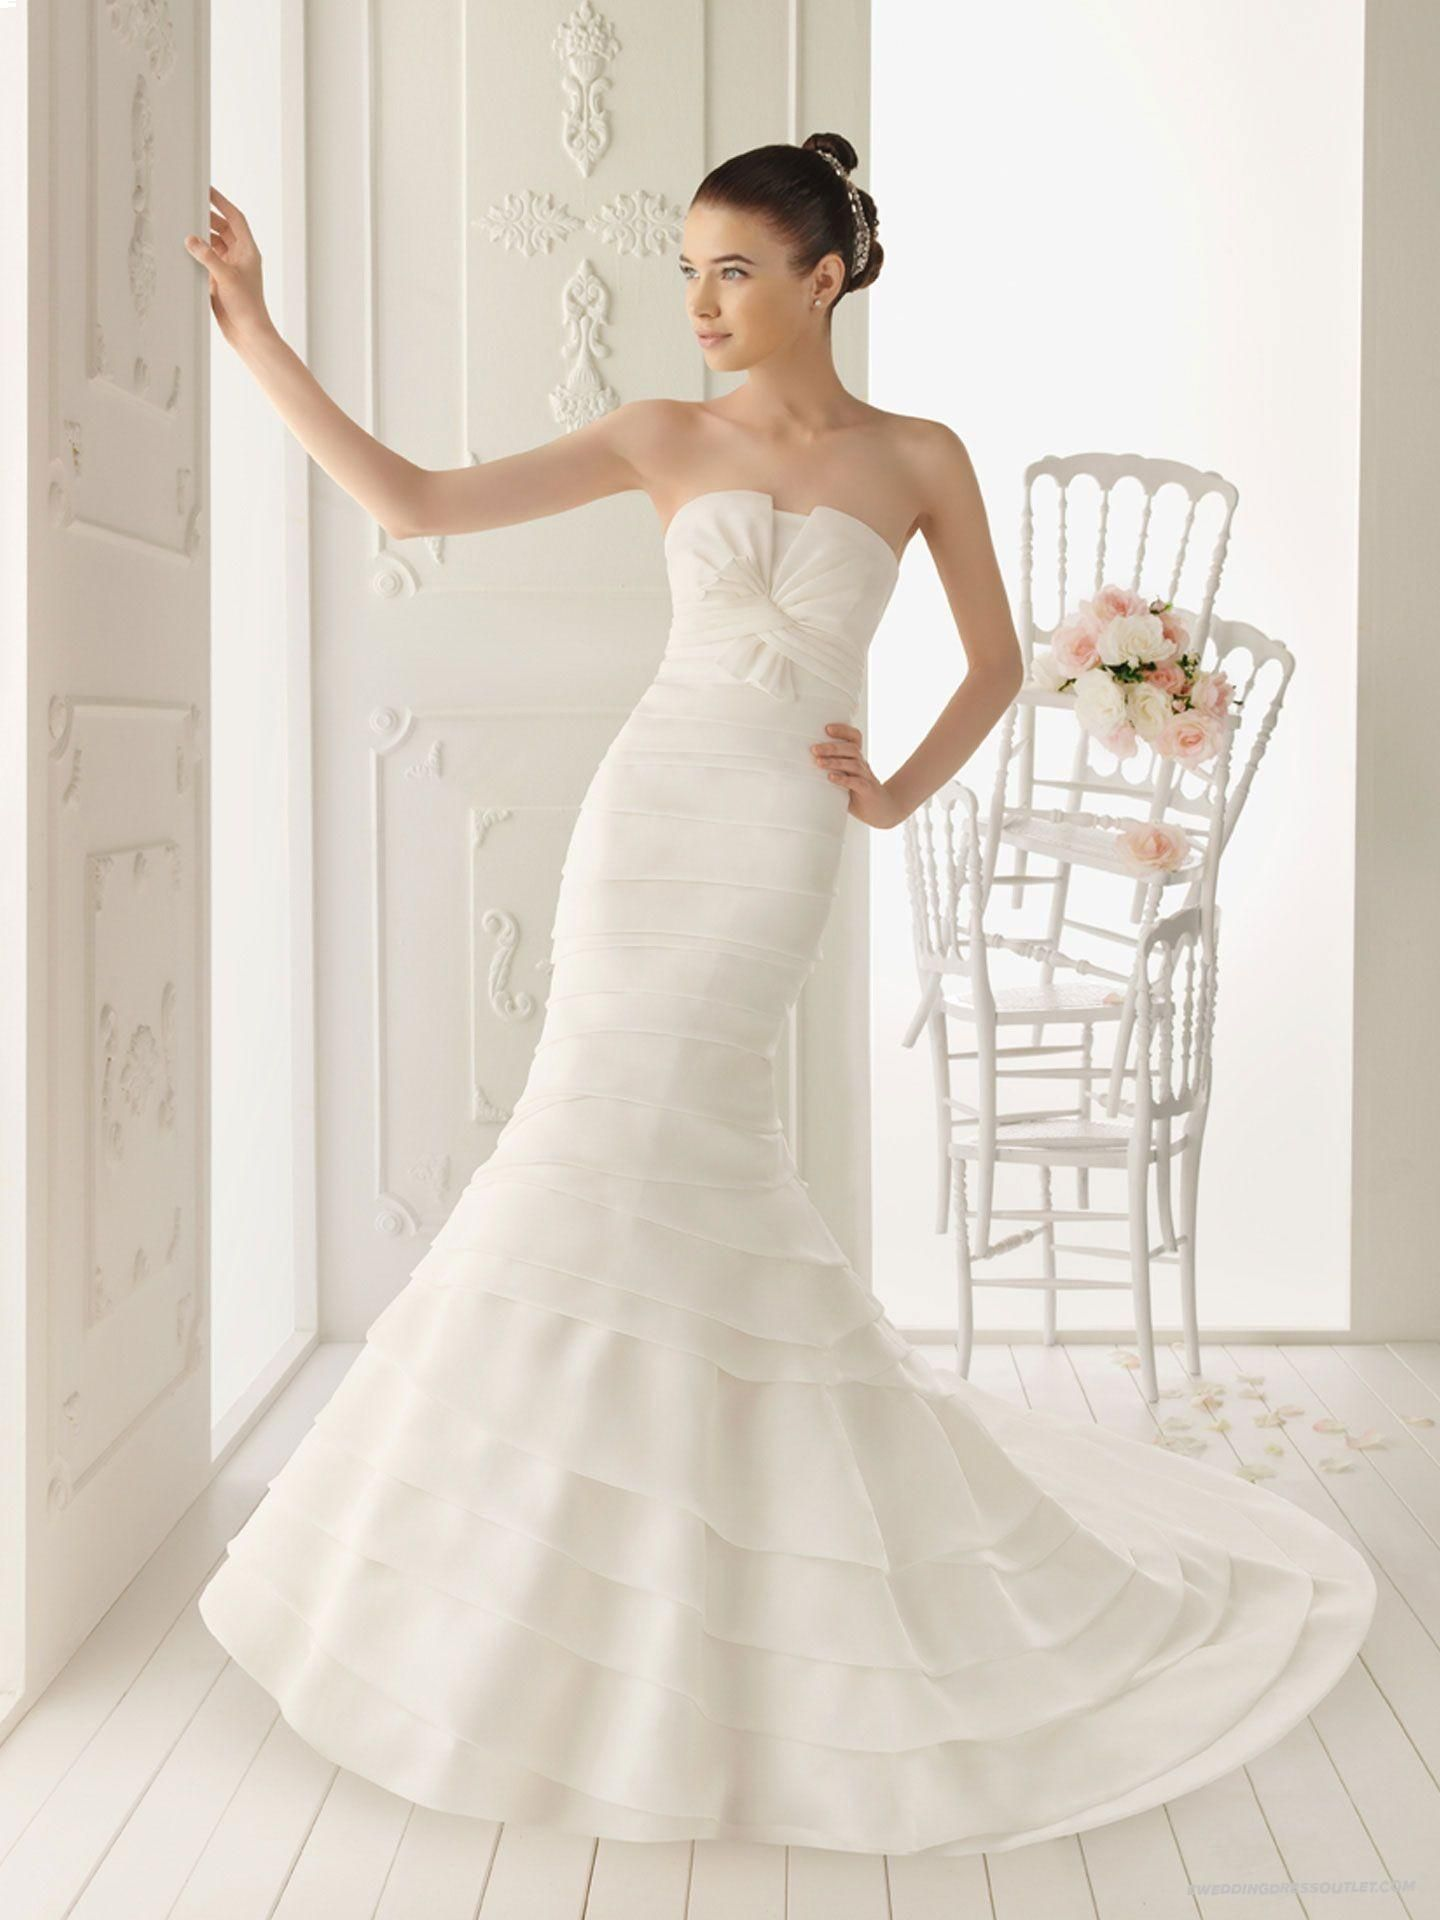 Trumpet style wedding dresses  Organza Mermaid Style with Twisted Bodice New Style Strapless